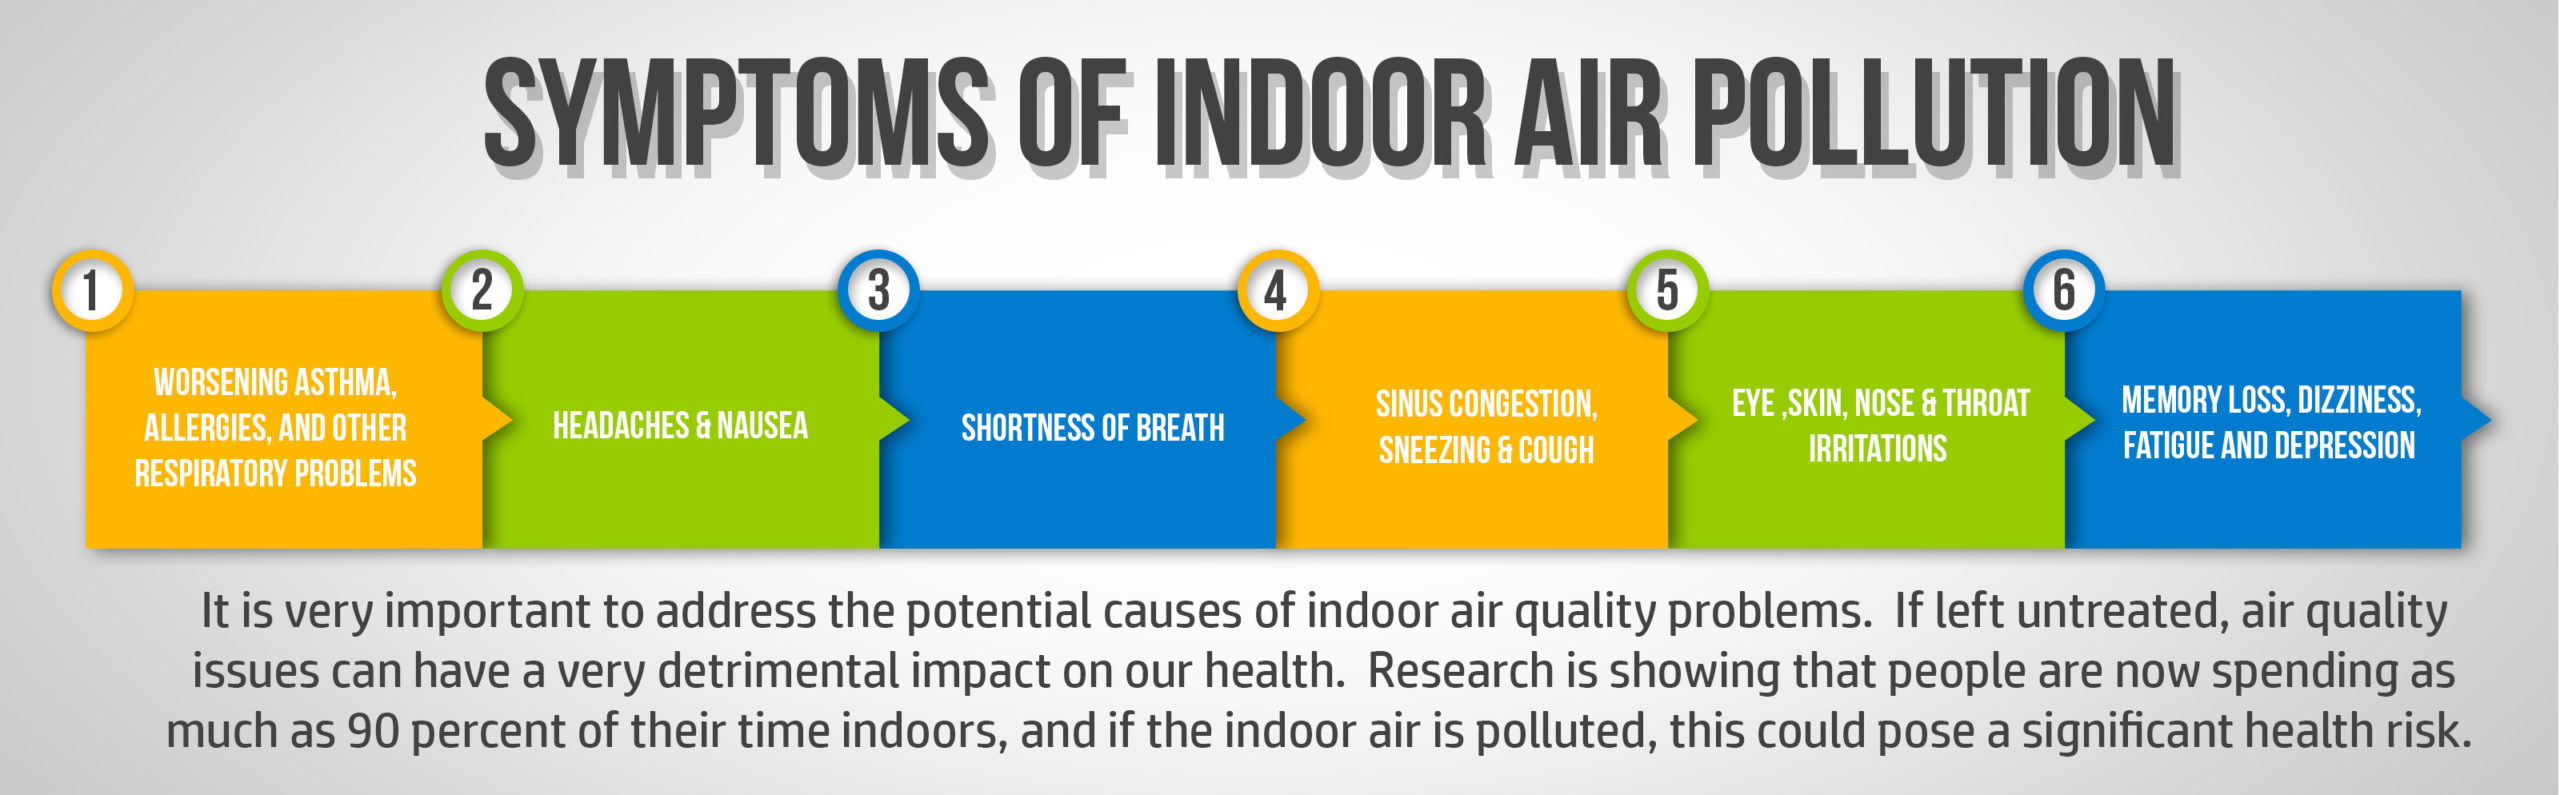 what are the symptoms of poor indoor air quality